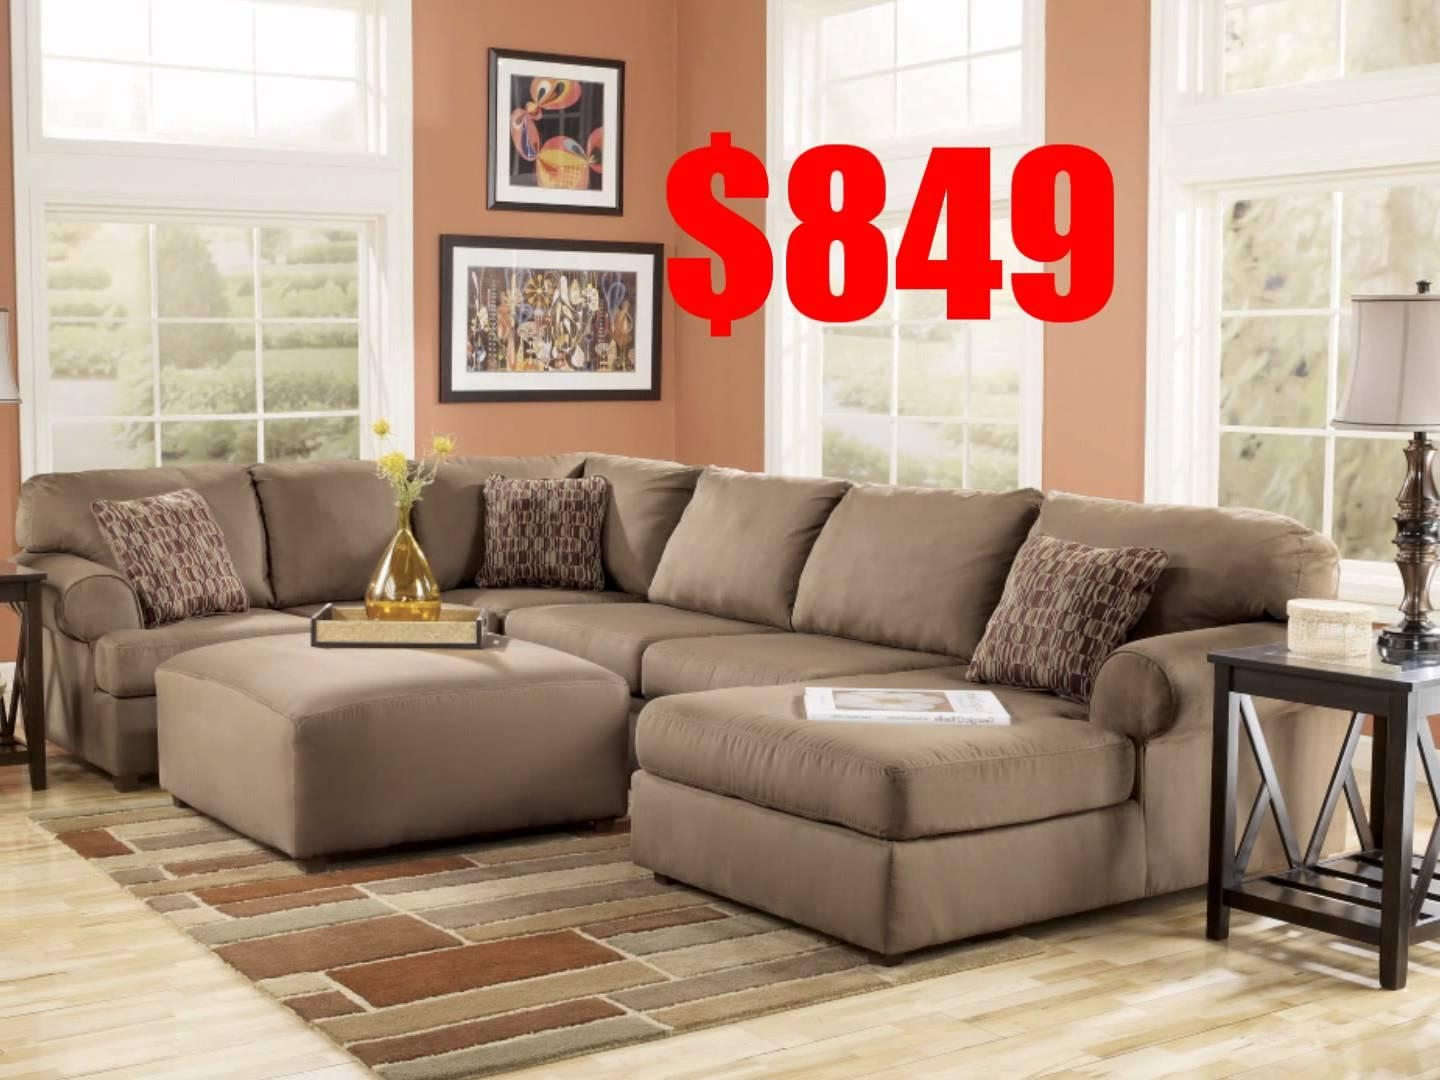 Decorating: Fill Your Living Room With Elegant Ashley Furniture Throughout Ashley Furniture Grenada Sectional (Image 8 of 15)